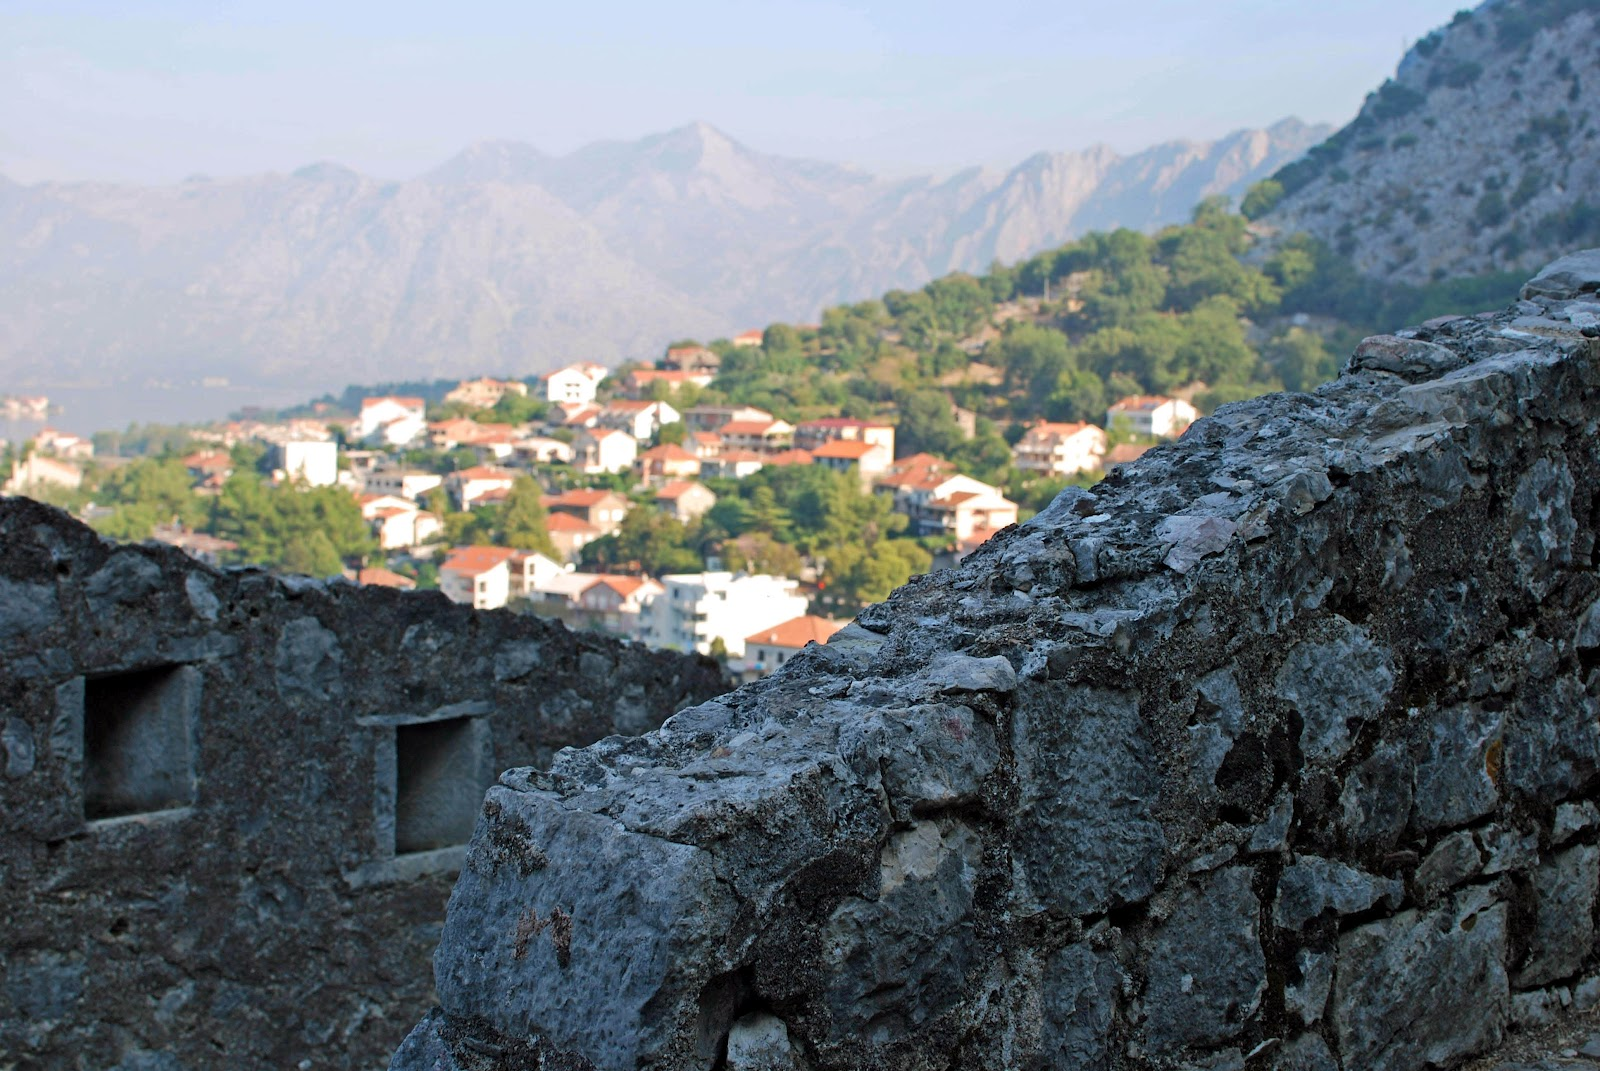 Climbing Kotor's Fortifications - we made sure to leave early in the morning so we could hike while the walls were shaded by the mountainside